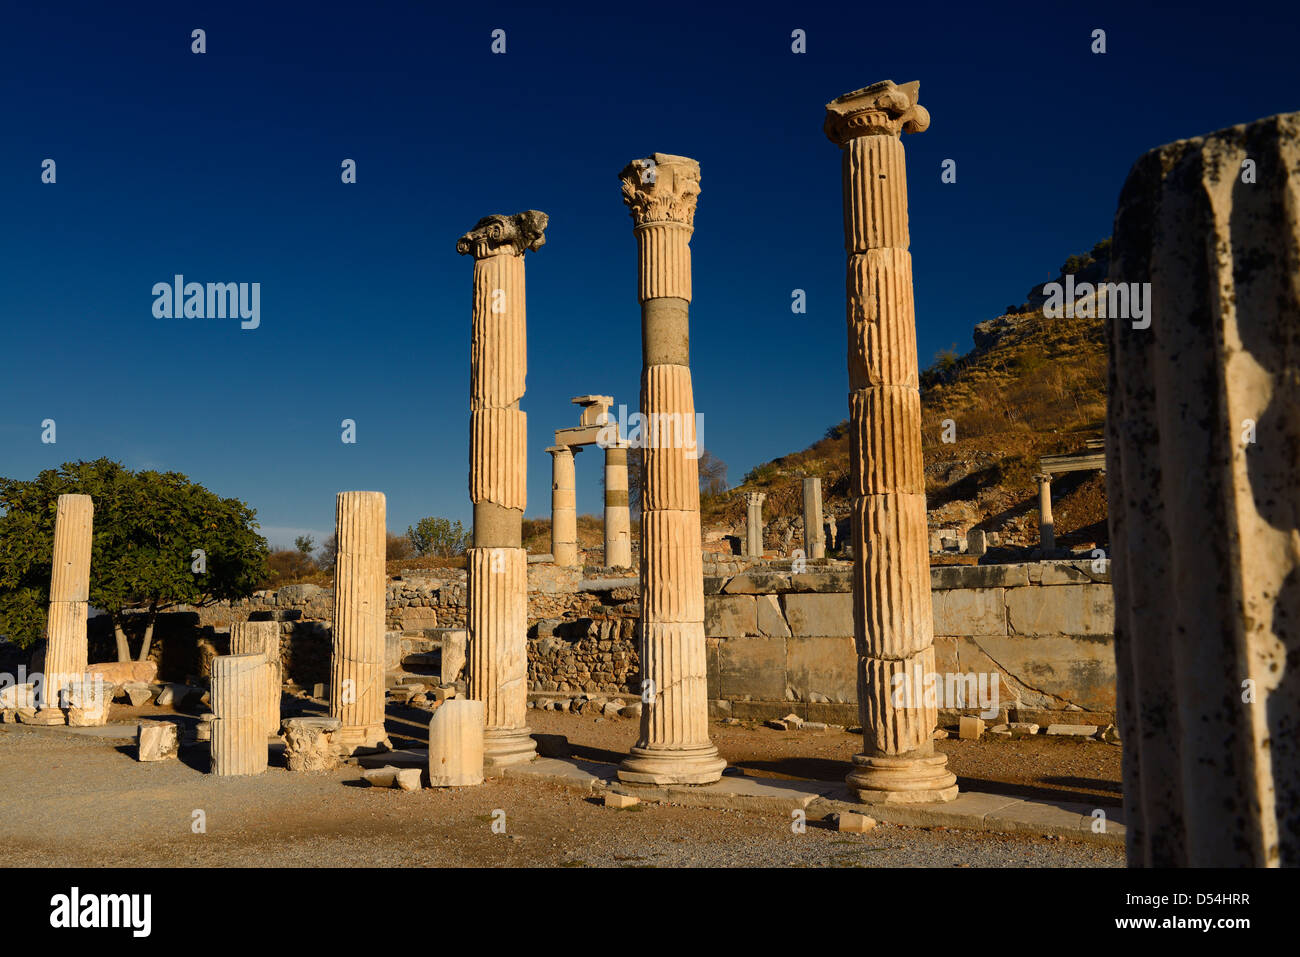 Temples of the Goddess Rome and Divine Caesar with Prytaneion at ruins of ancient Ephesus Turkey - Stock Image